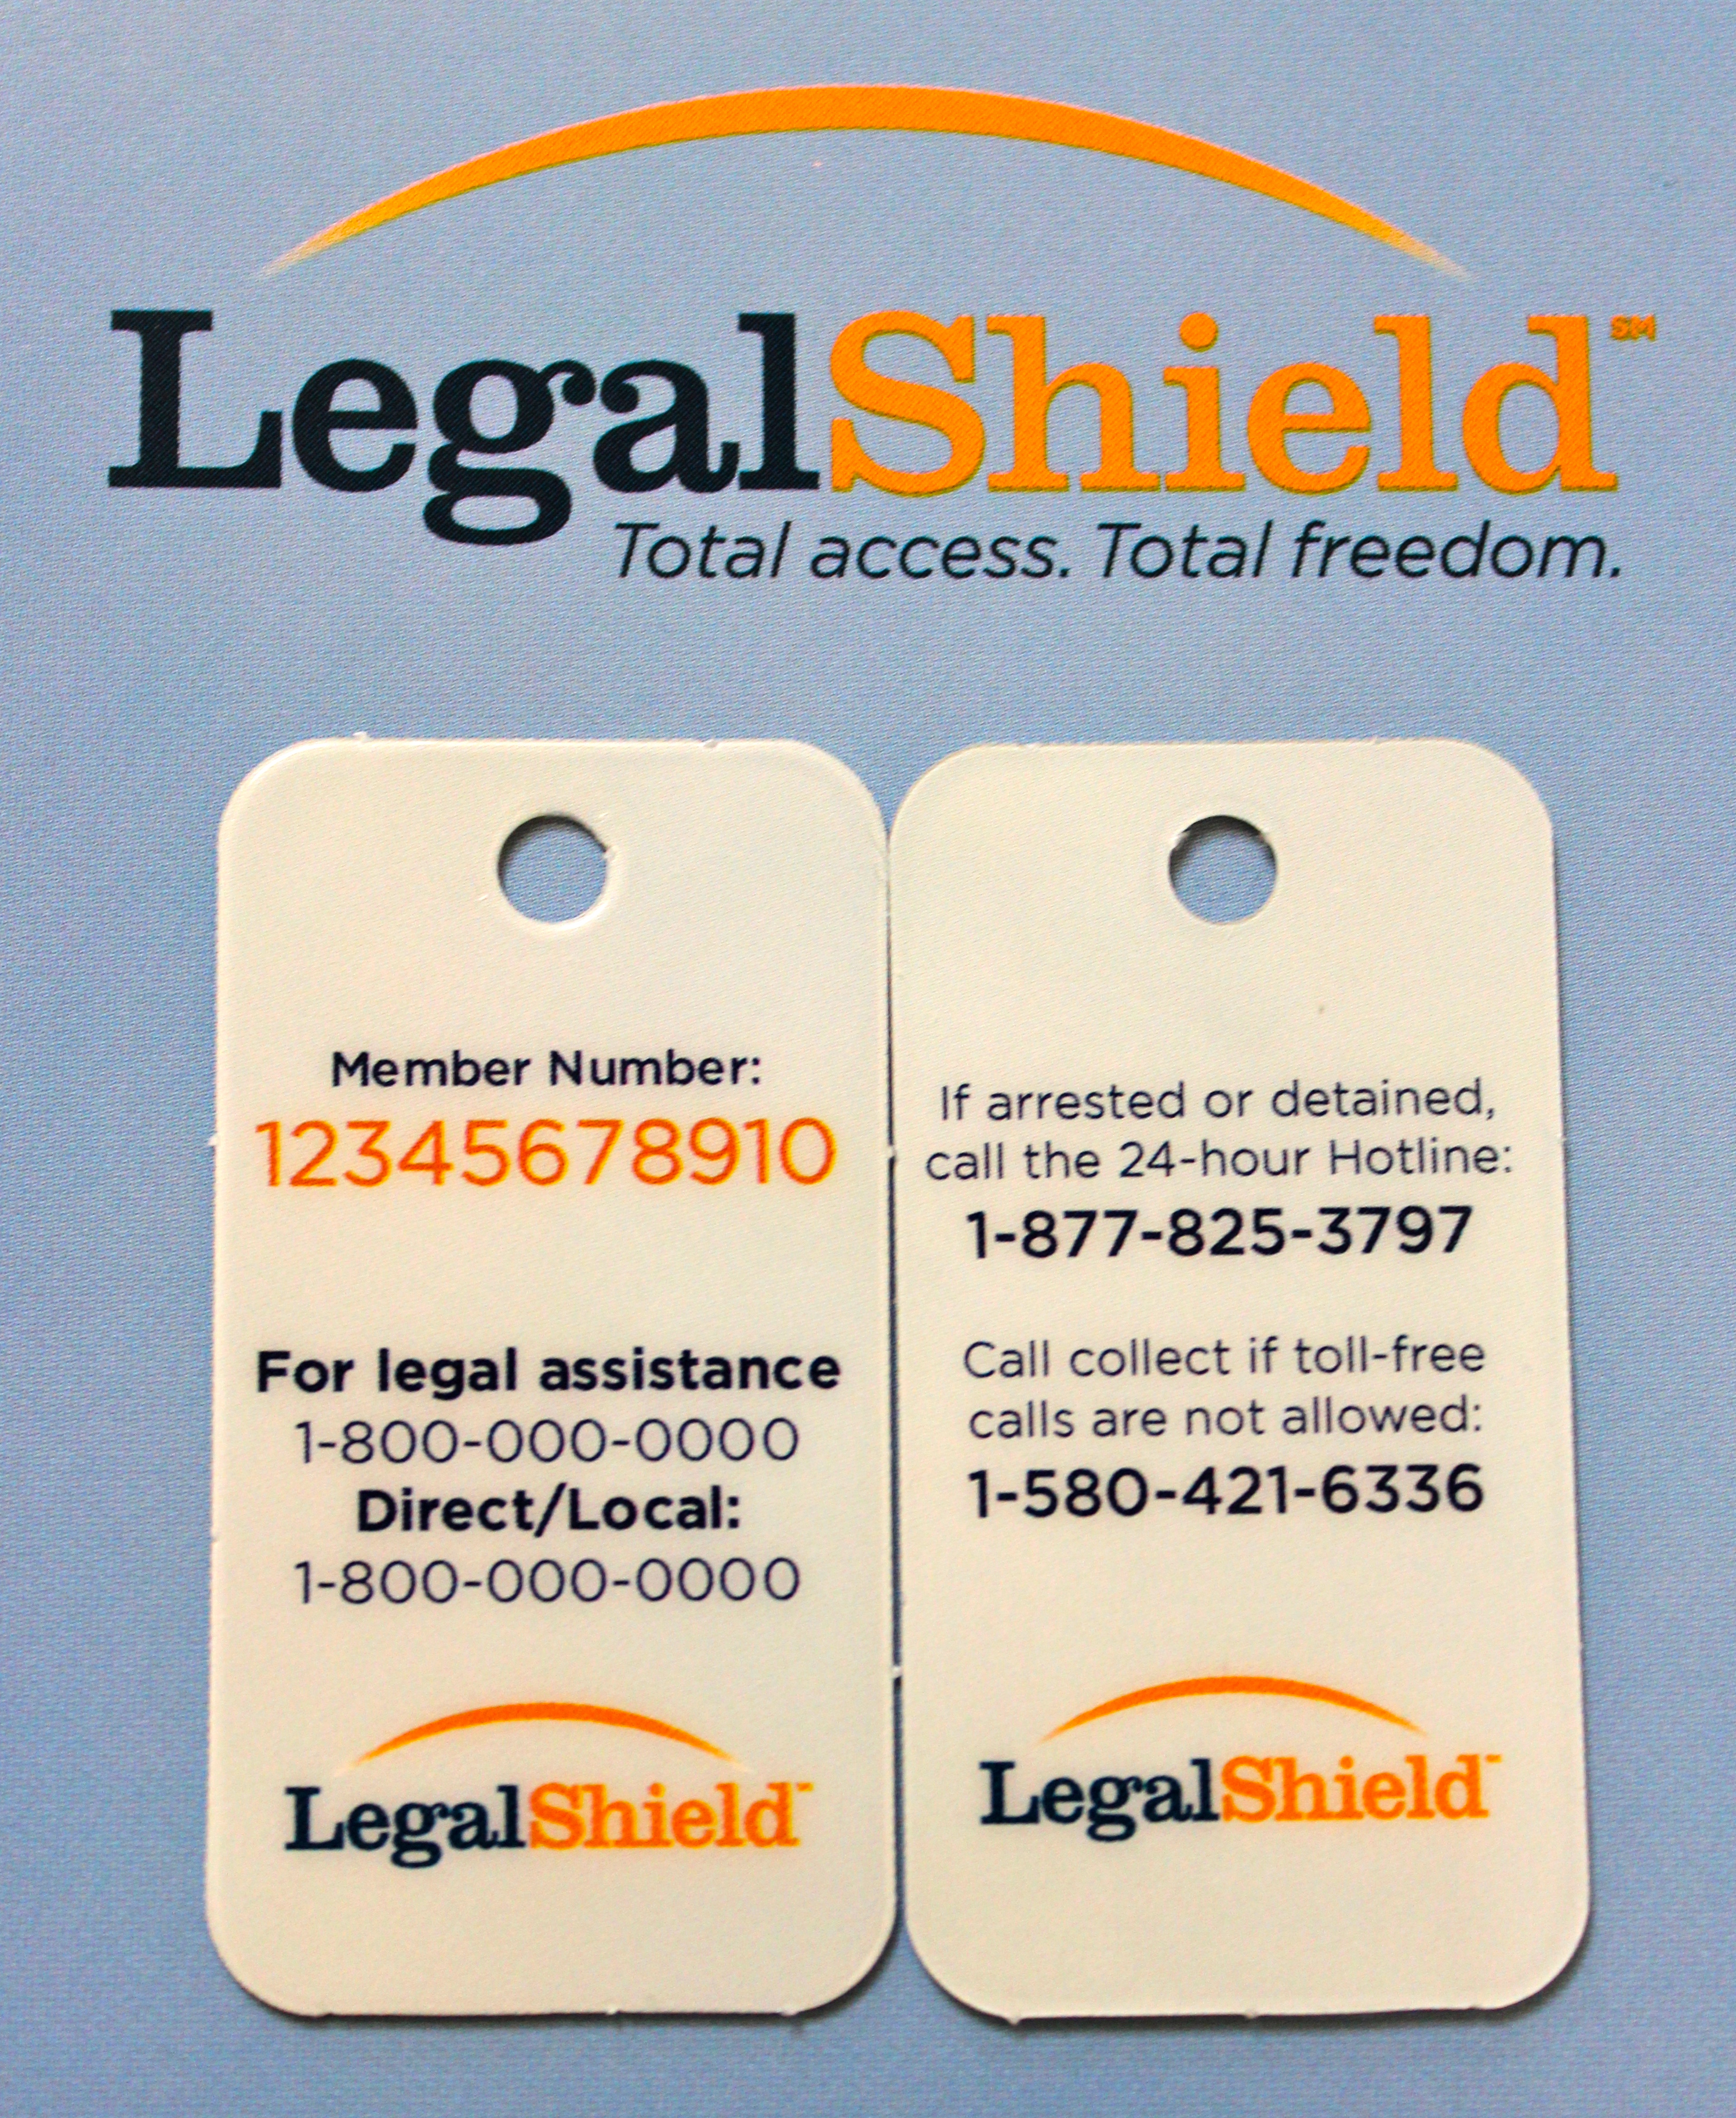 NEW** LegalShield Membership Cards! Have You Requested Your Cards ...